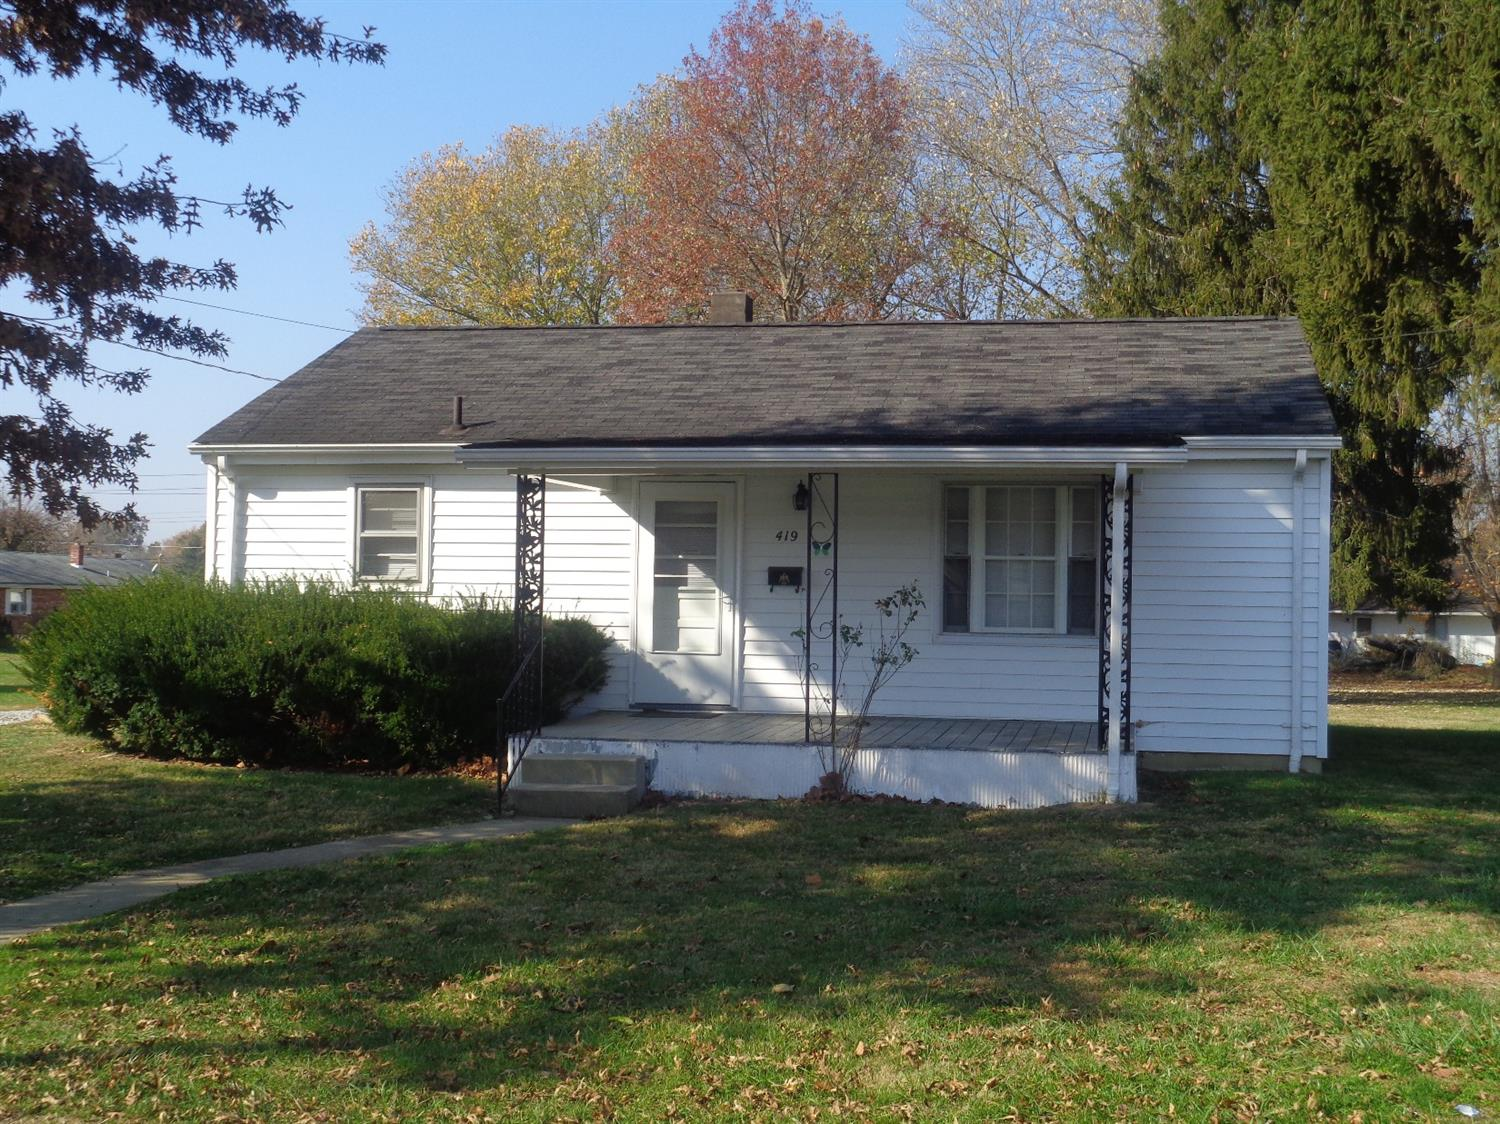 Photo 1 for 419 Beech St Falmouth, KY 41040